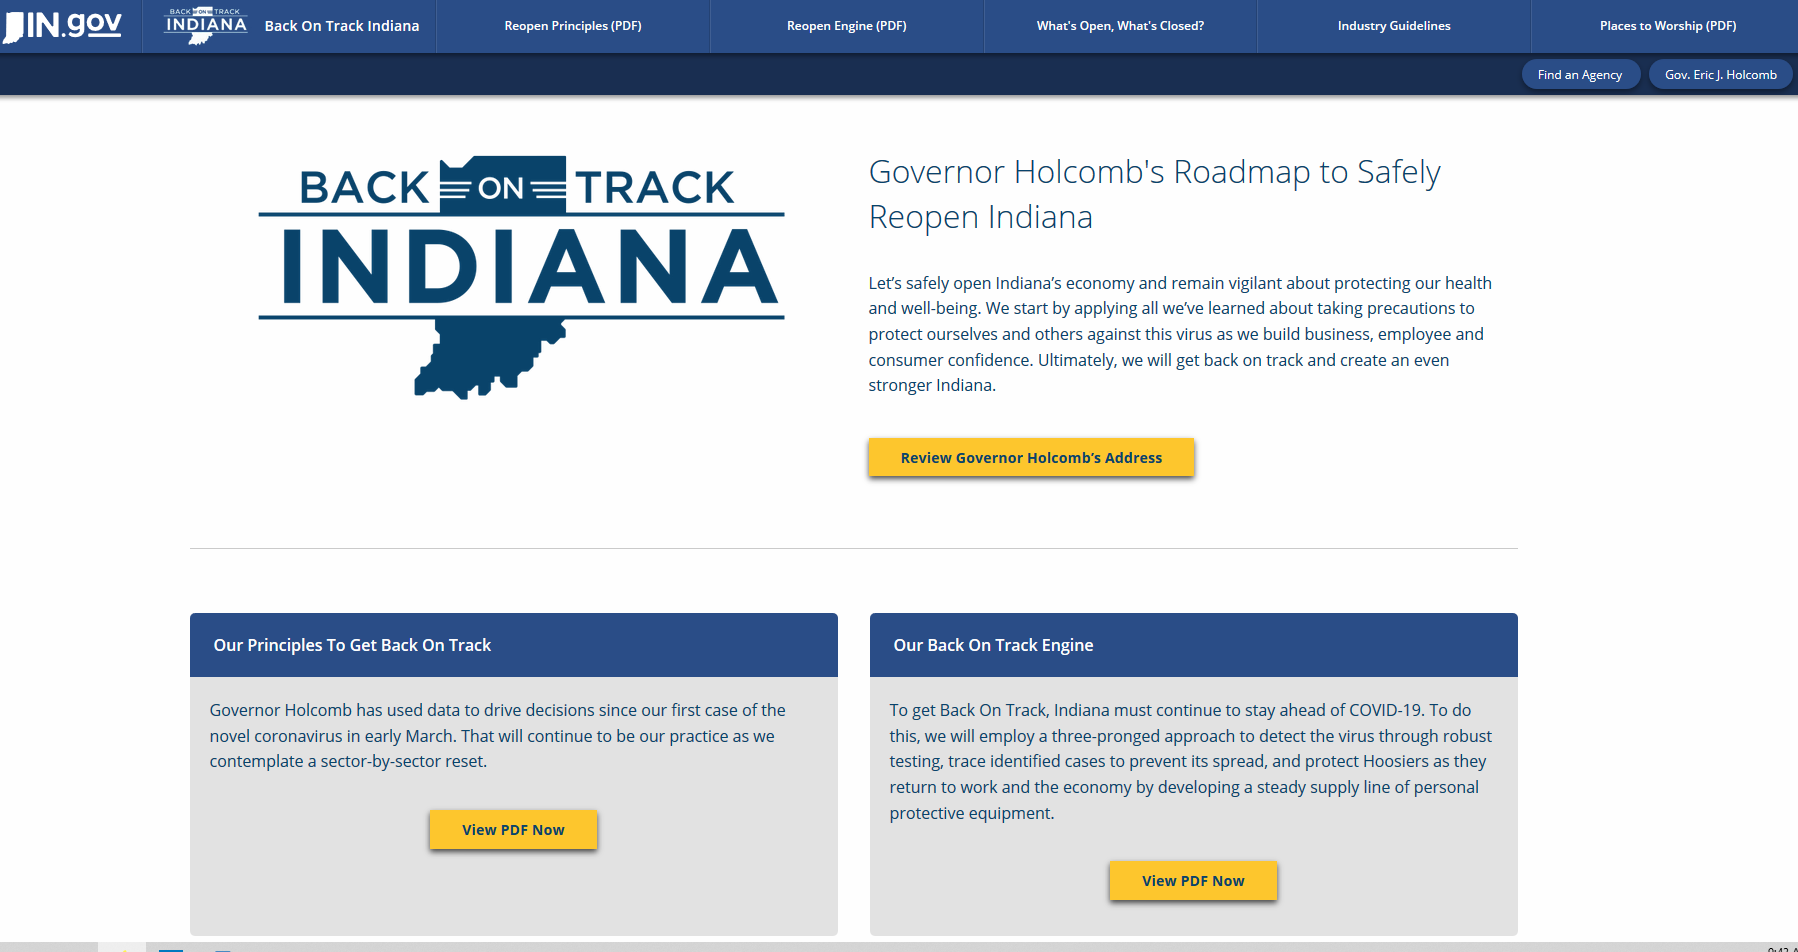 Back on Track Indiana - Gov. Holcomb's Roadmap to Safely Reopen Indiana